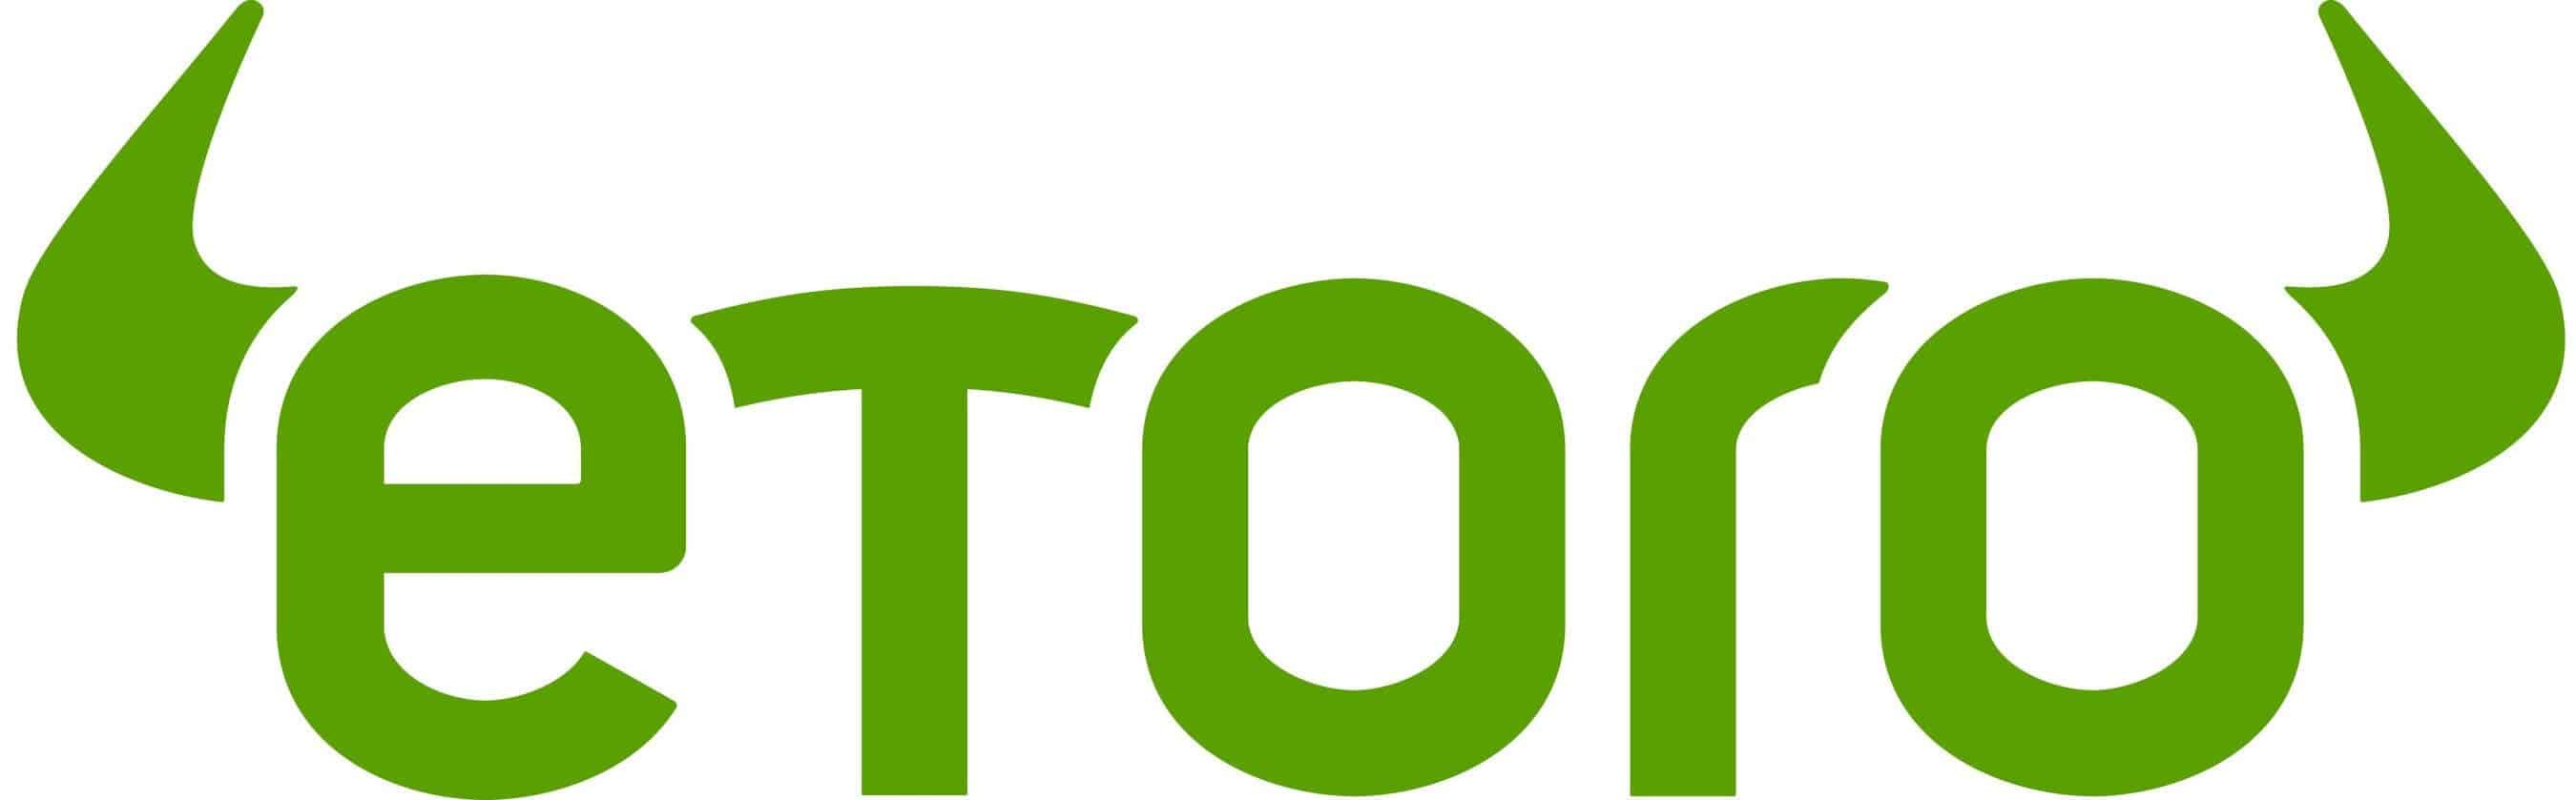 etoro-stock-featured-image